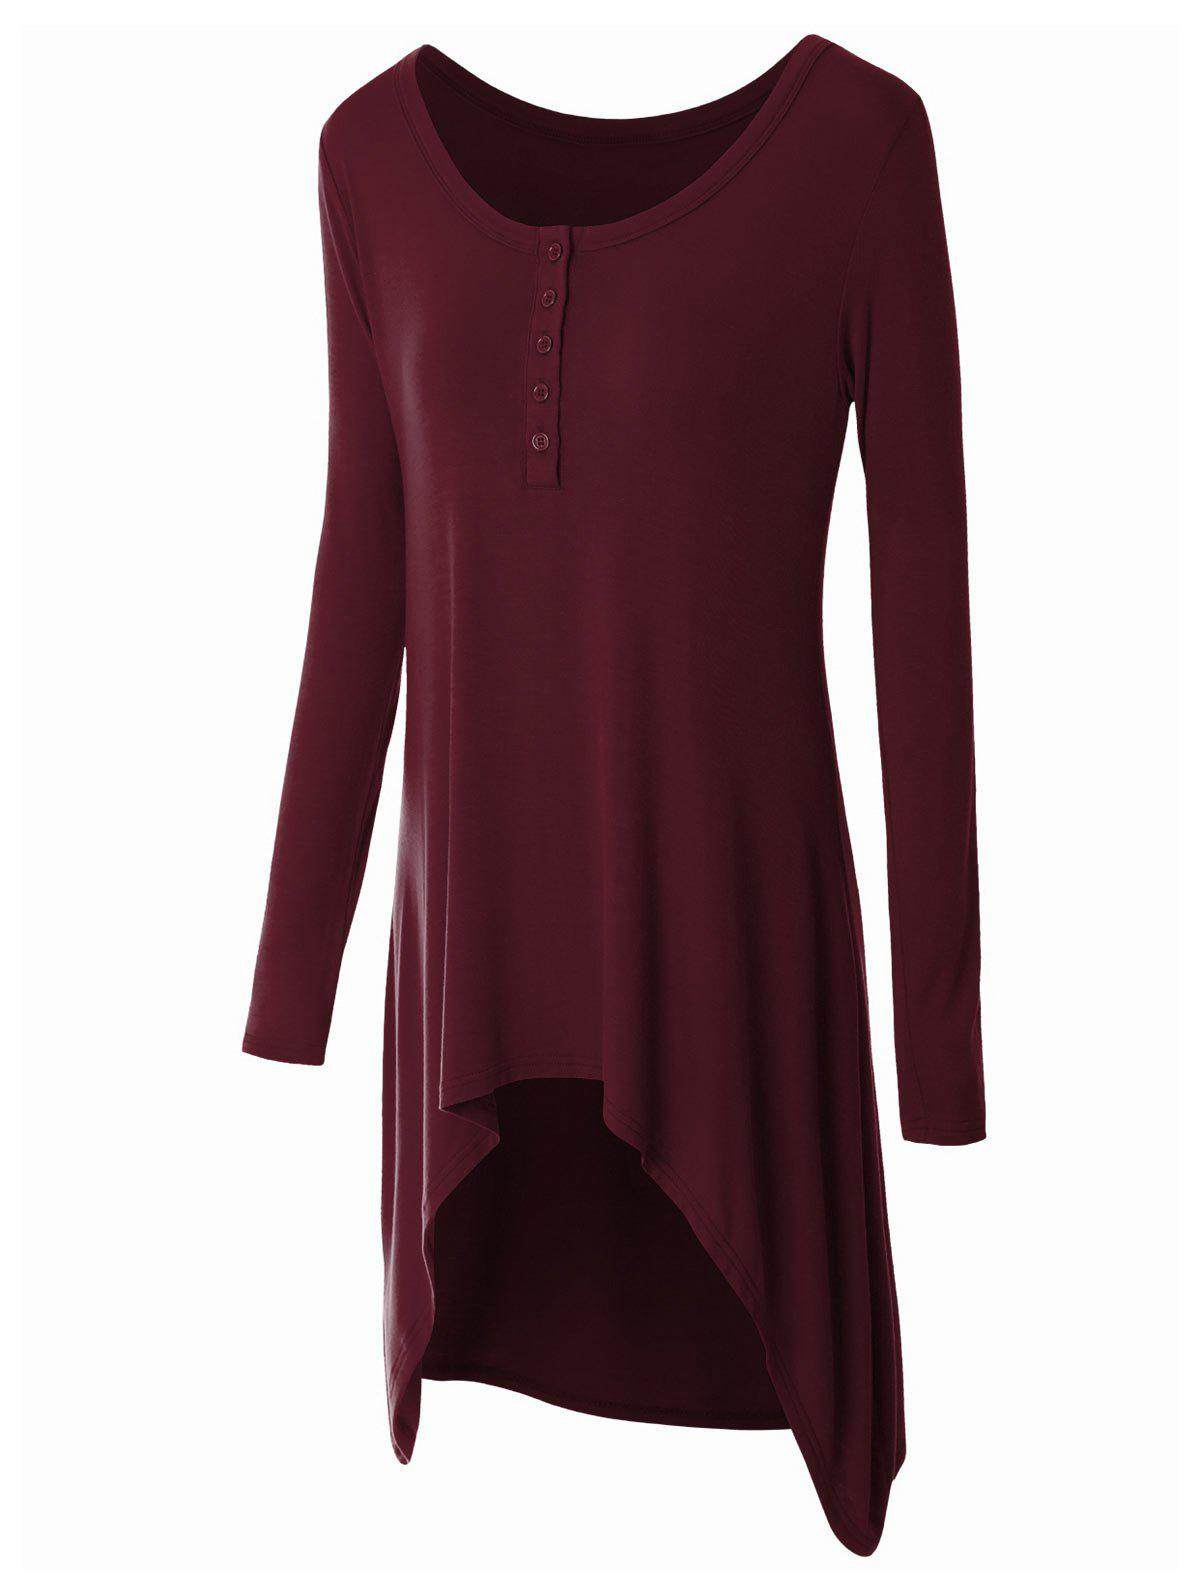 Plus Size High Low Button Embellished Tee - DEEP RED 4XL